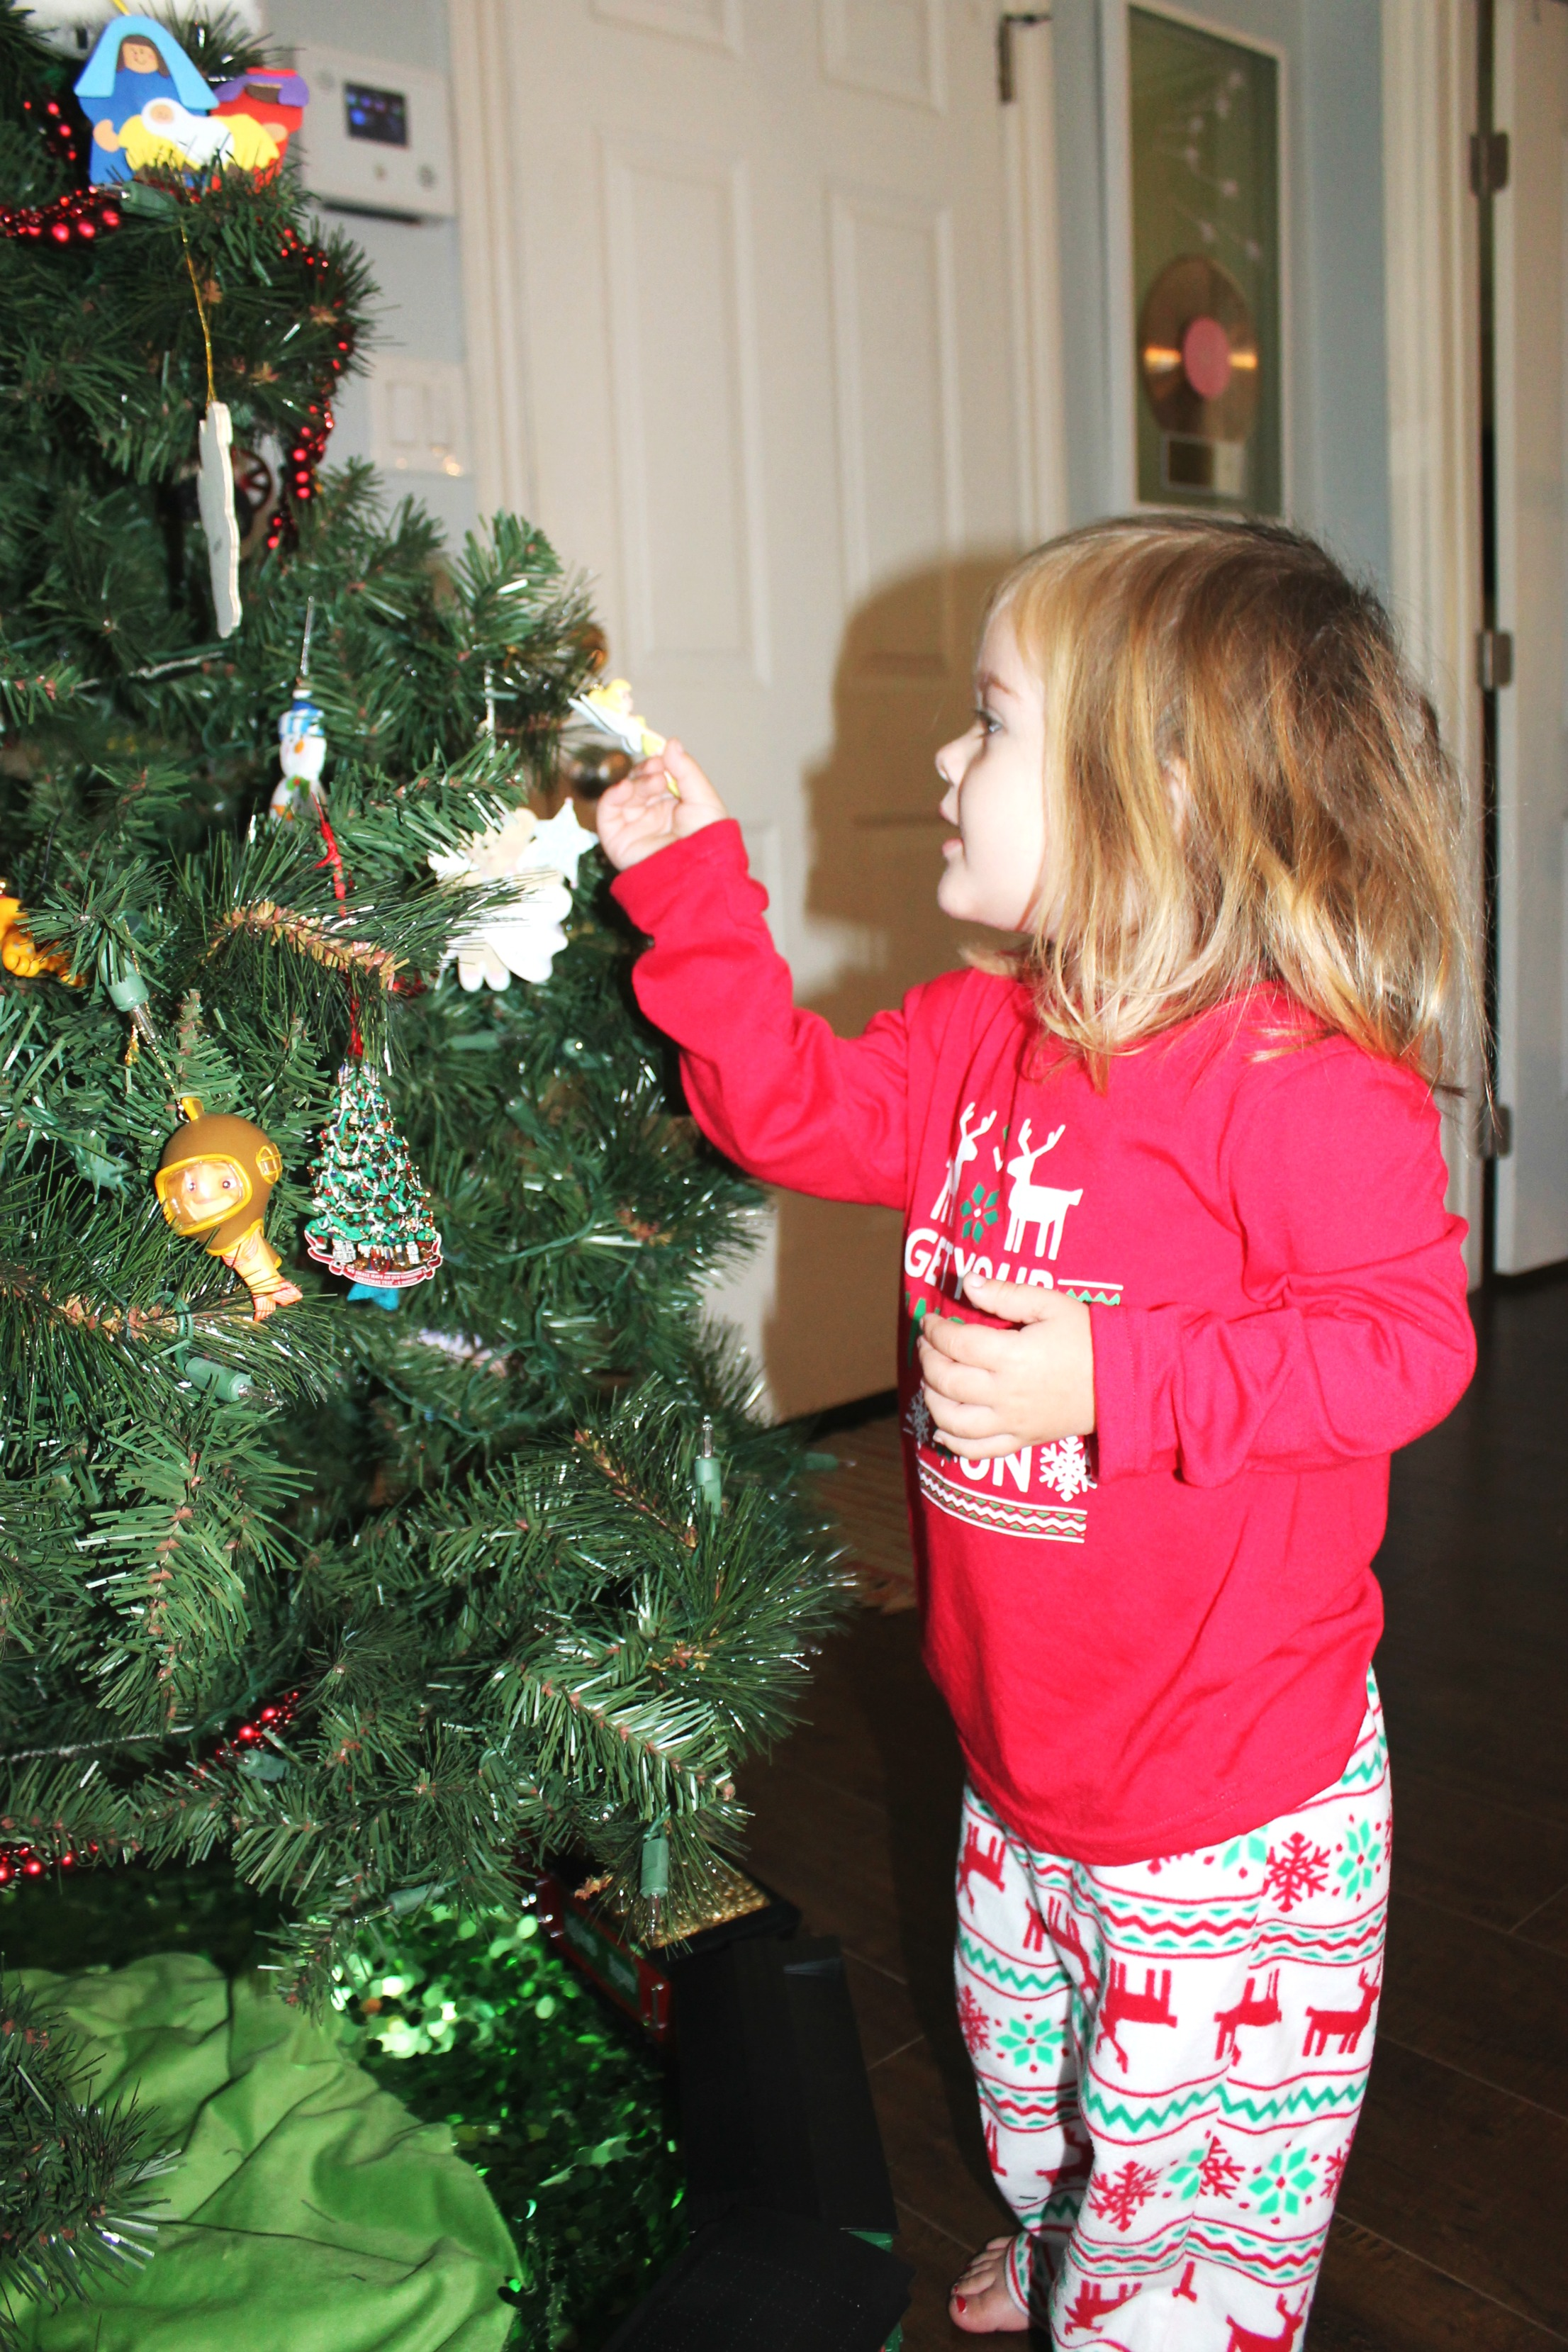 To make this holiday season fun & purposeful, we're focusing on togetherness. If you've got a toddler at home, try these 10 Advent Activities for Toddlers.